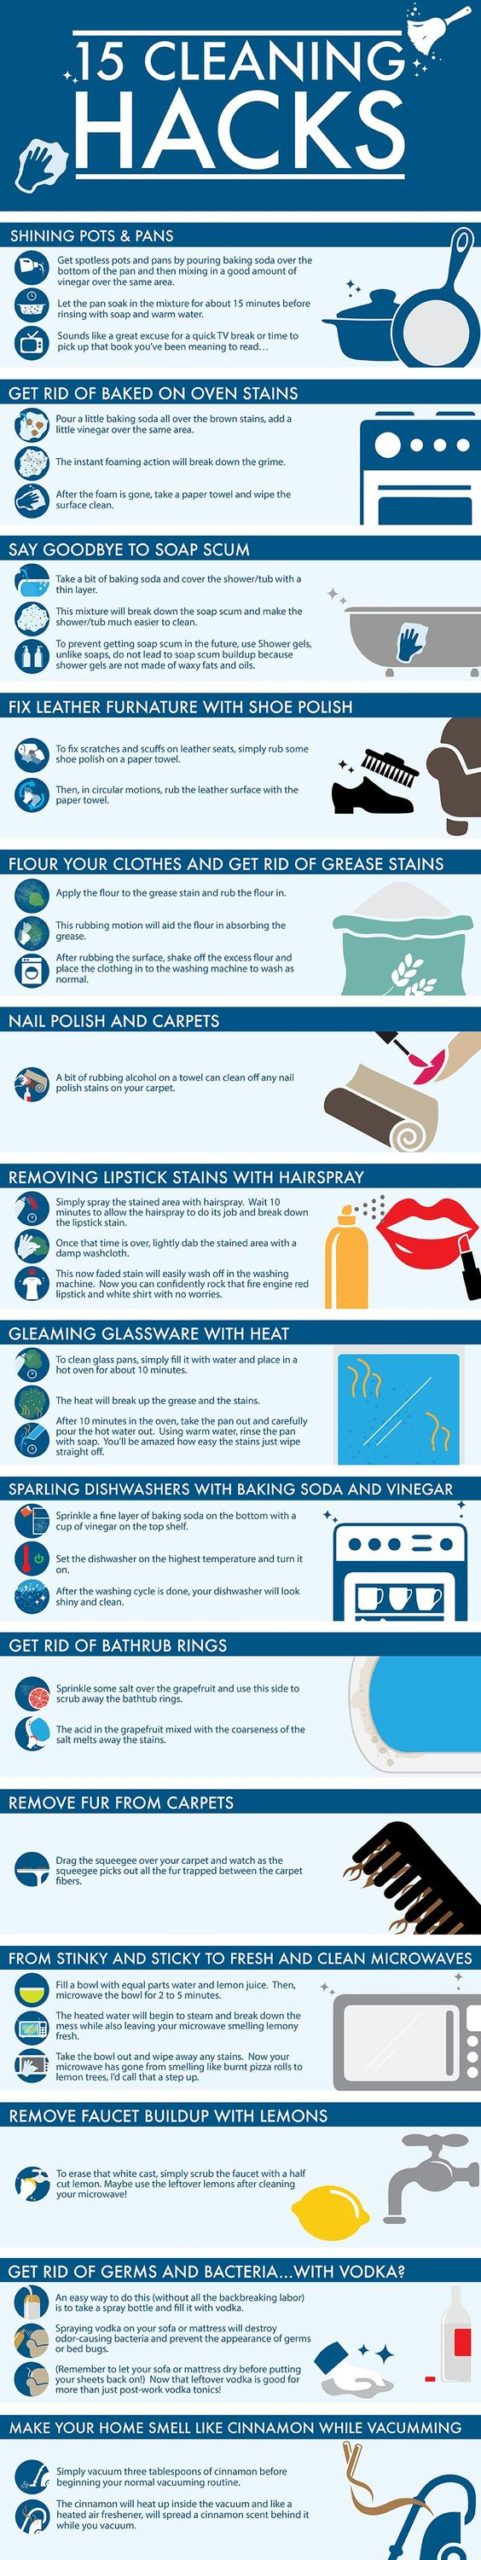 15 Cleaning Hacks